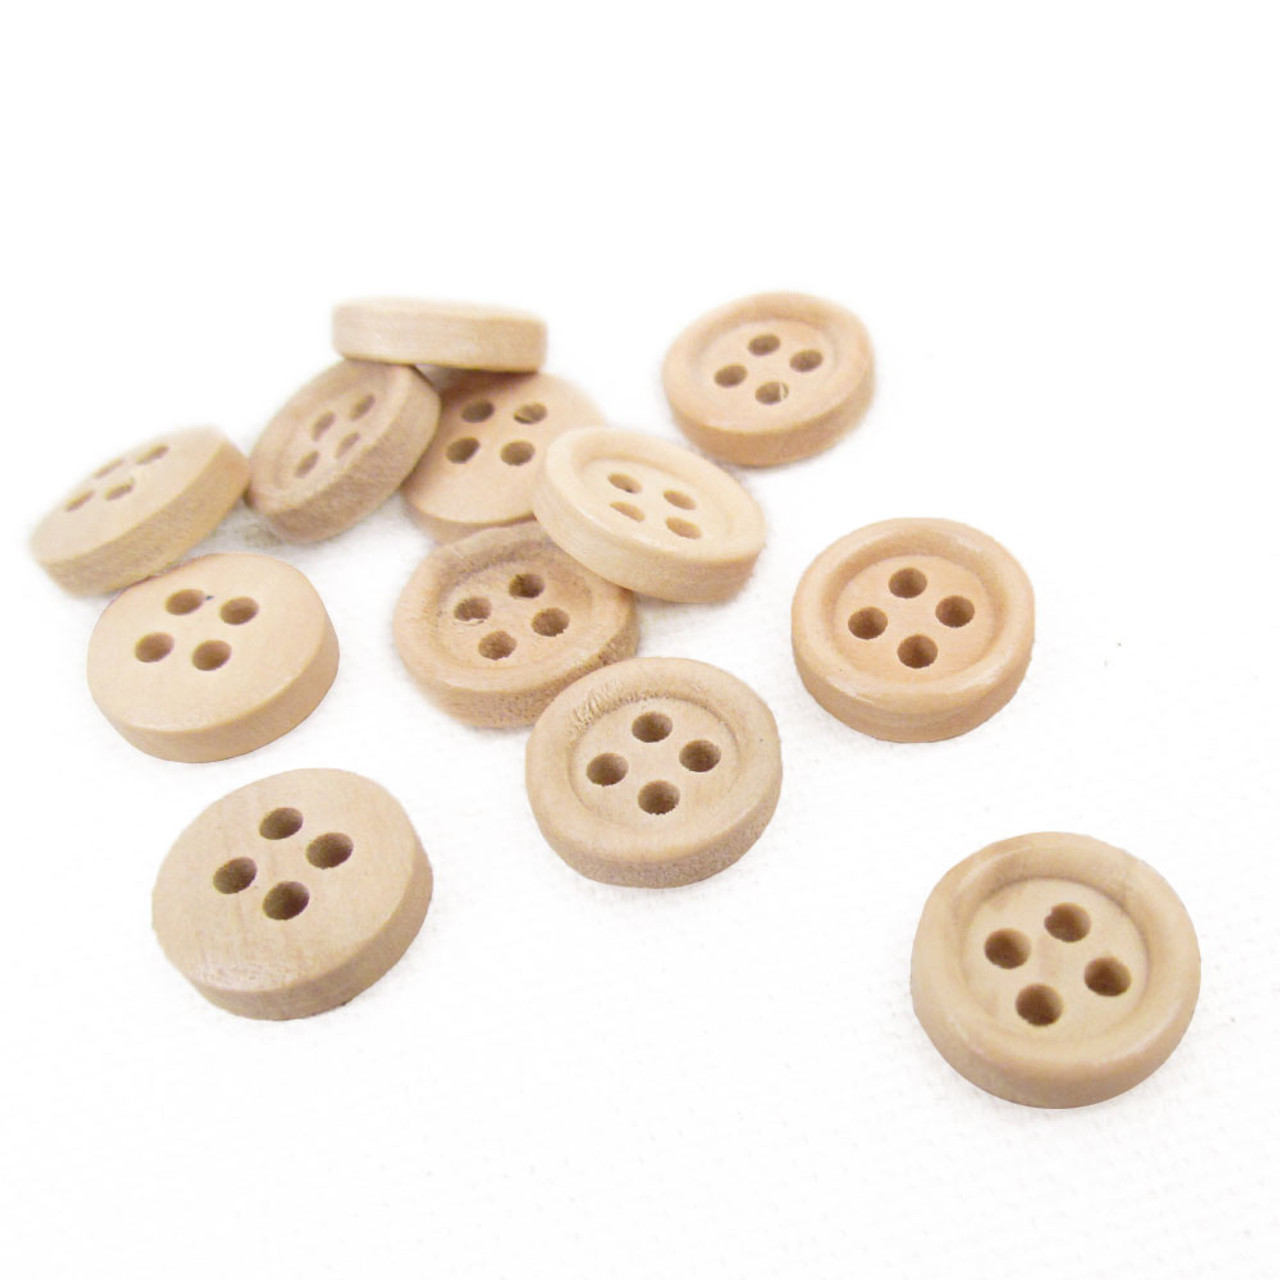 "1/2"" Chai Small Round Wood Button - Set of 12"